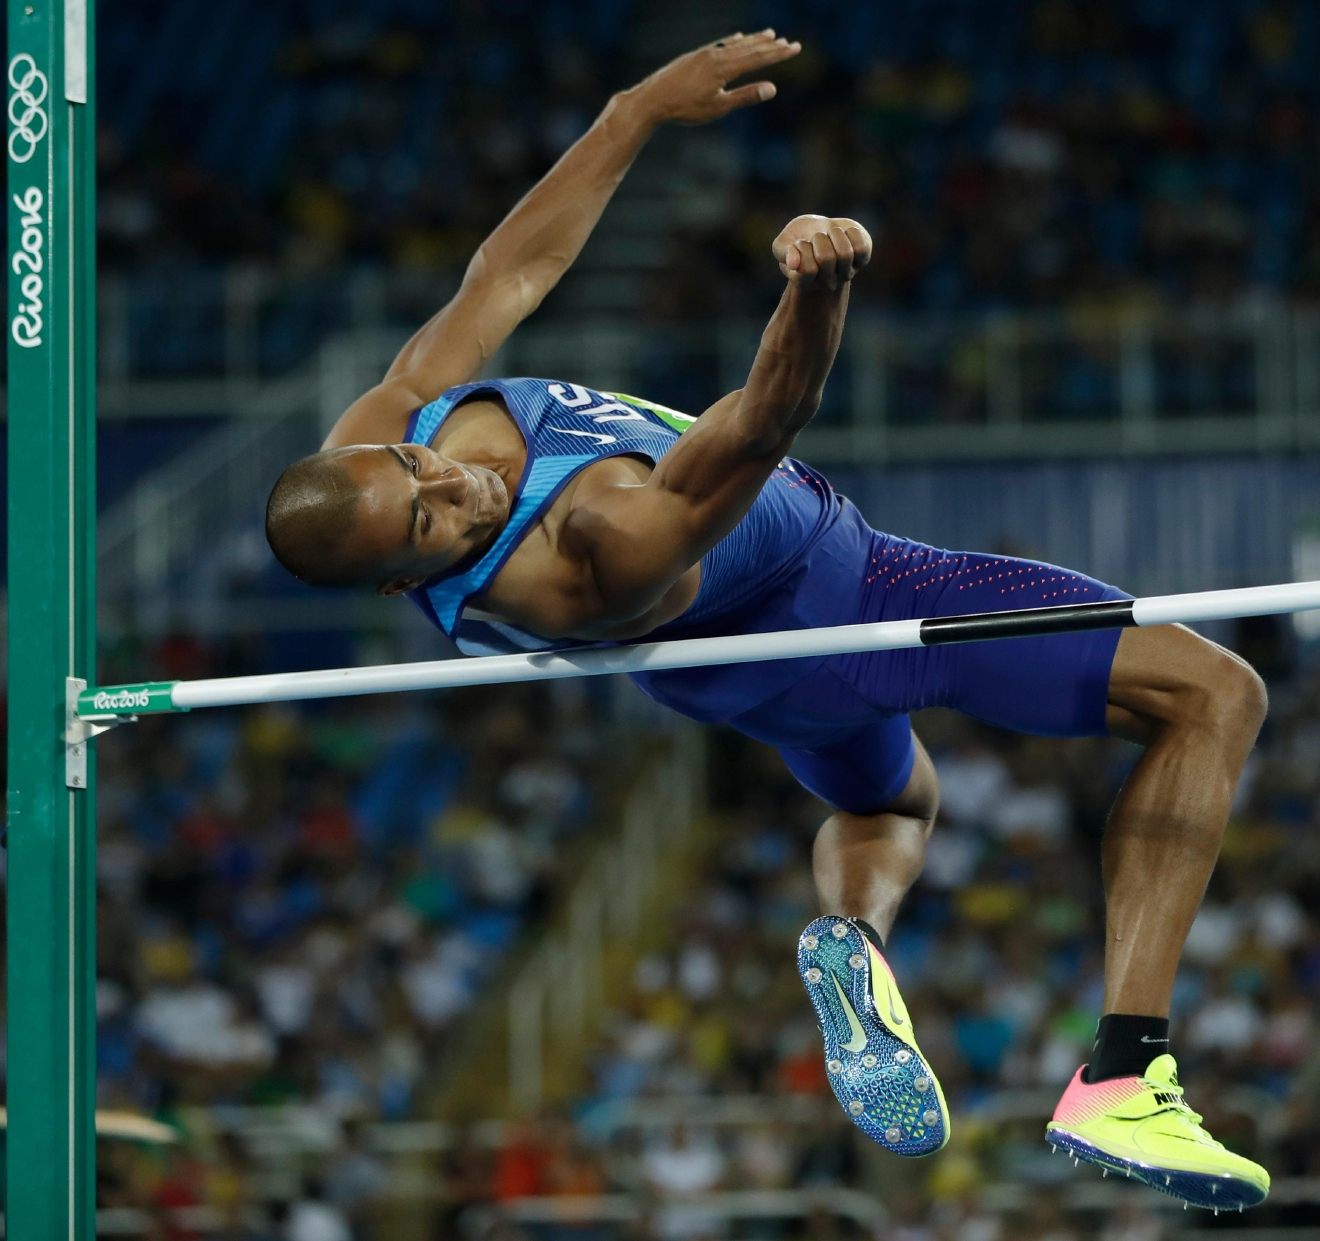 United States' Ashton Eaton makes an attempt in the high jump of the decathlon during the athletics competitions of the 2016 Summer Olympics at the Olympic stadium in Rio de Janeiro, Brazil, Wednesday, Aug. 17, 2016. (AP Photo/Matt Slocum)